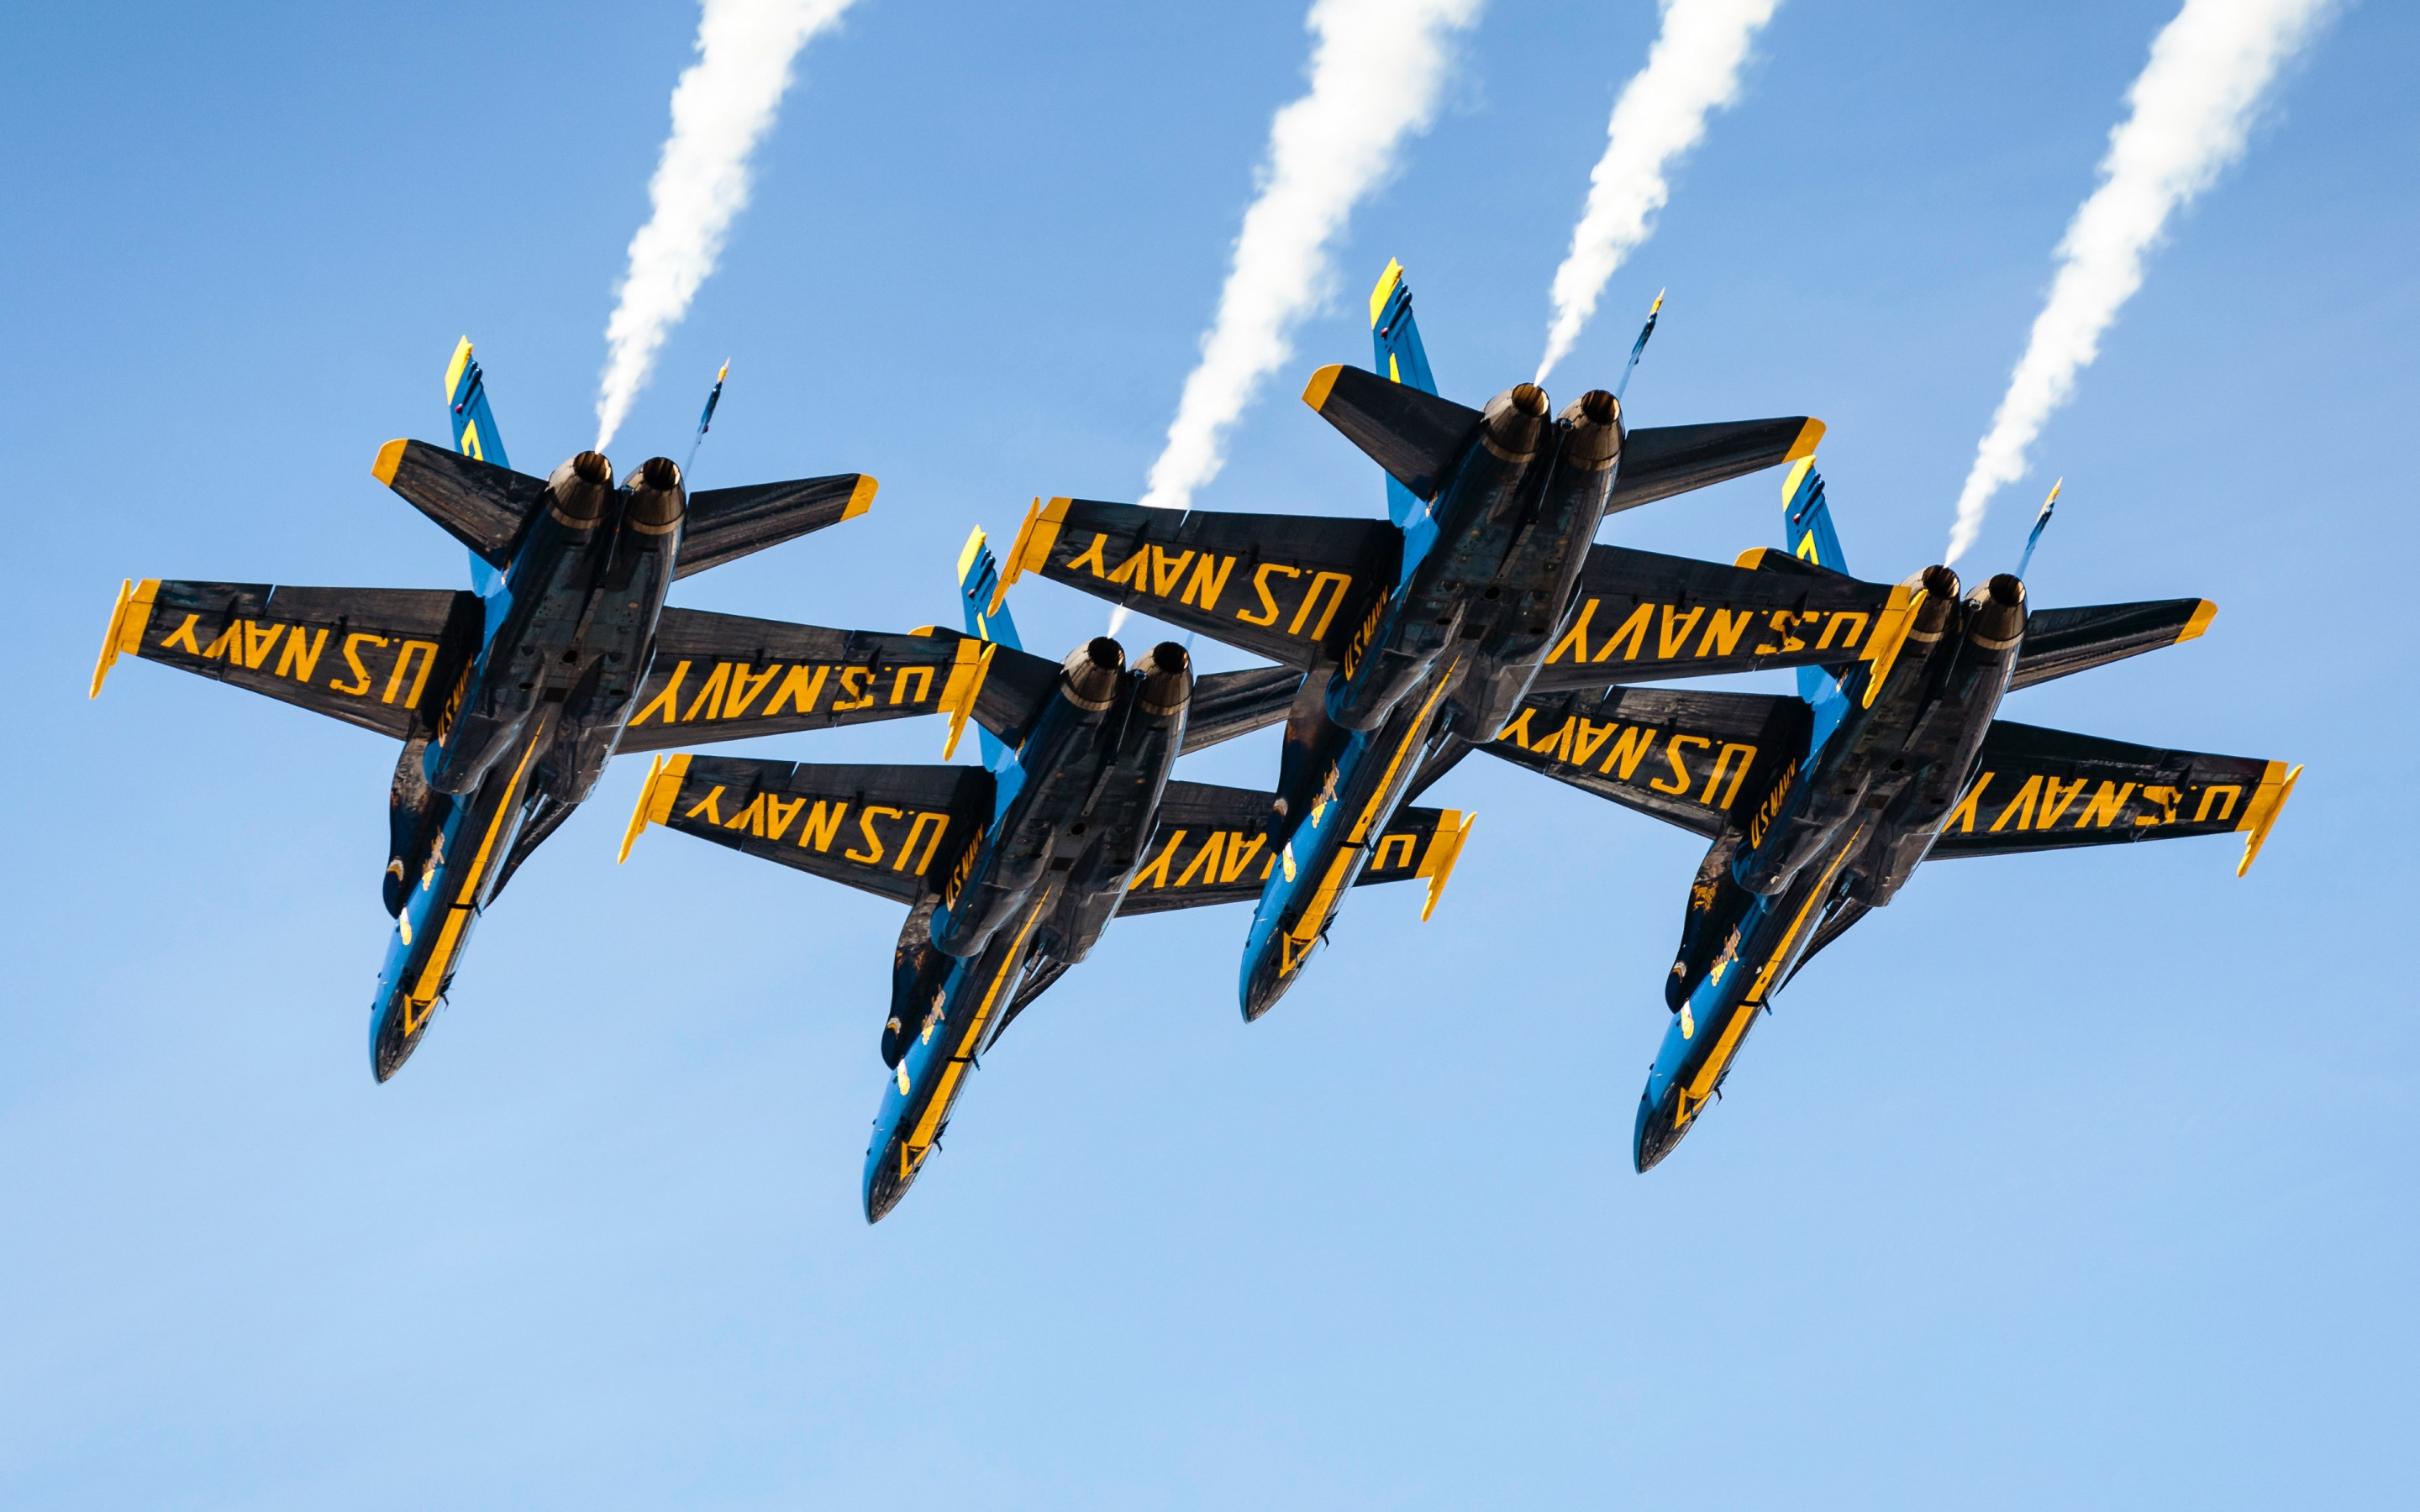 Blue Angels at San Francisco airshow wallpaper 2880x1800